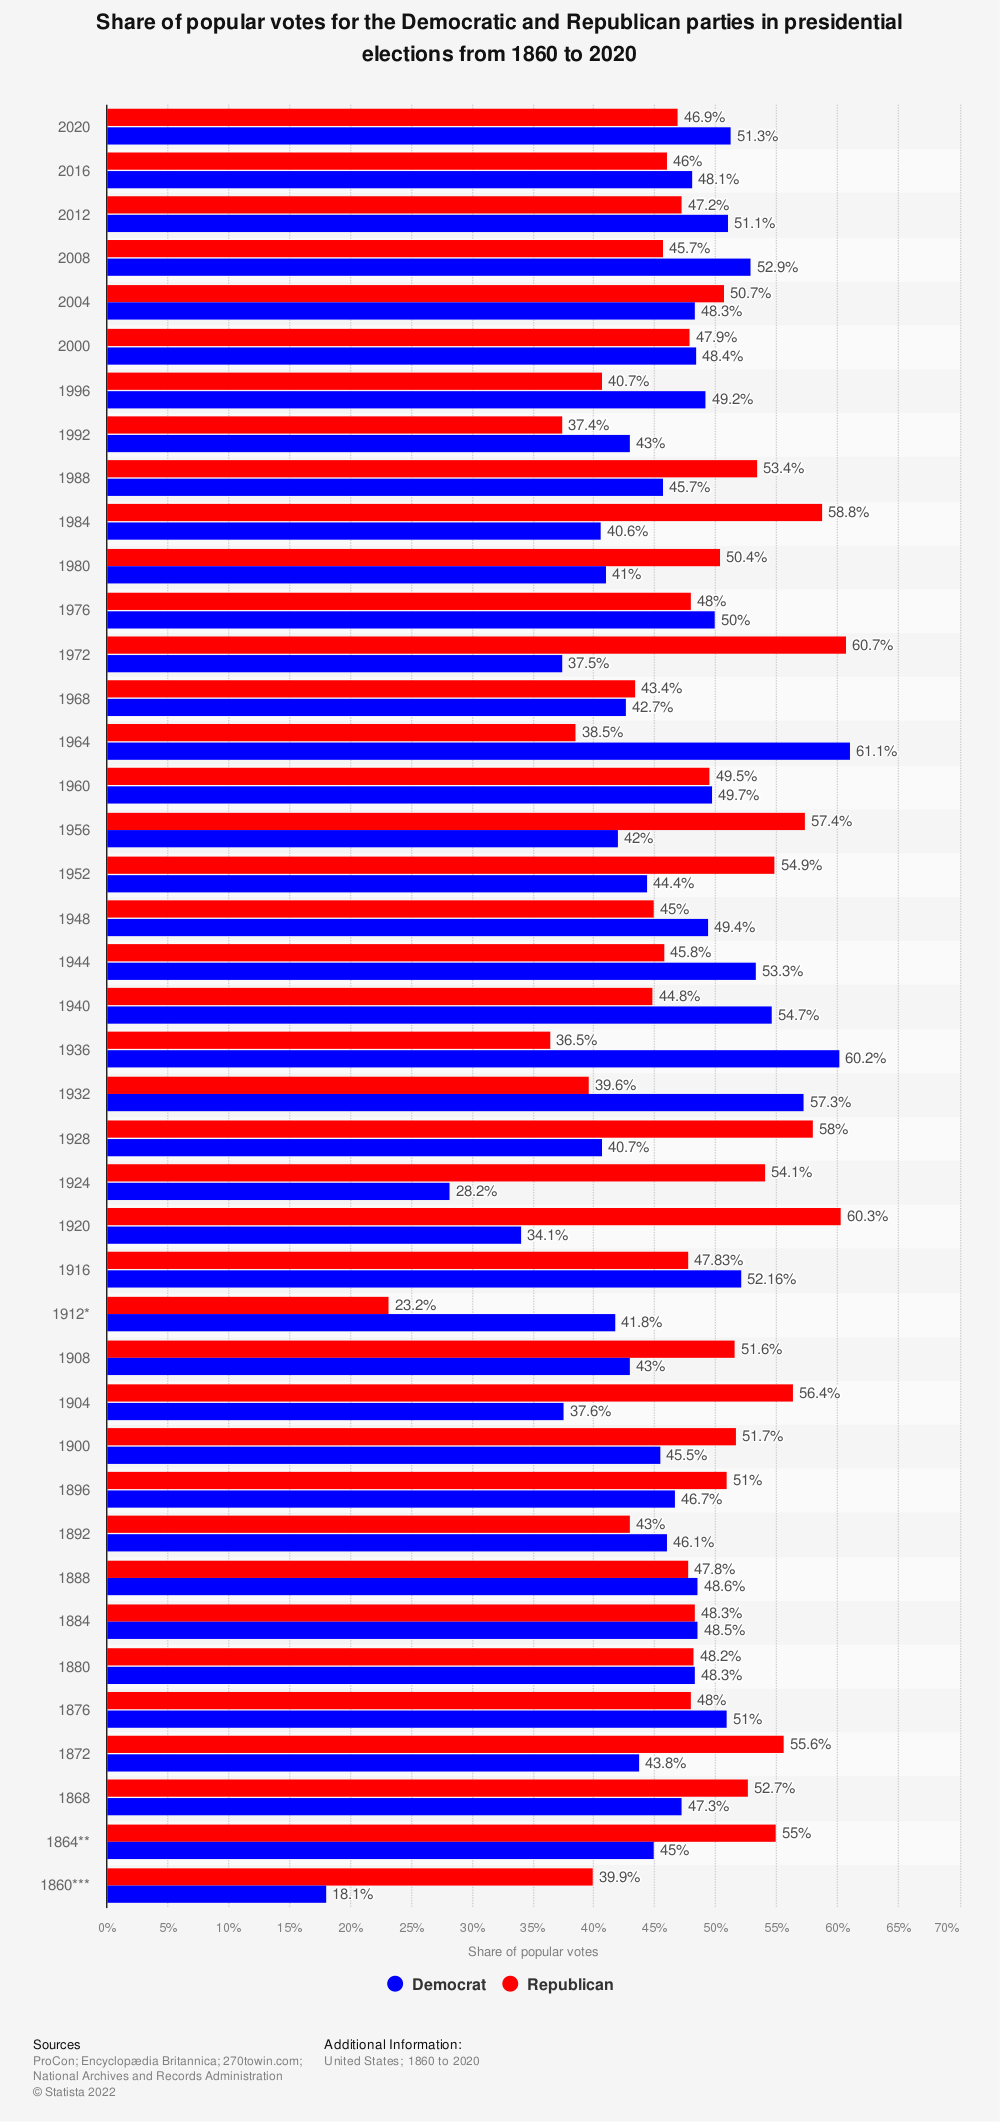 Statistic: Share of popular votes for the Democratic and Republican parties in presidential elections from 1828 to 2016 | Statista